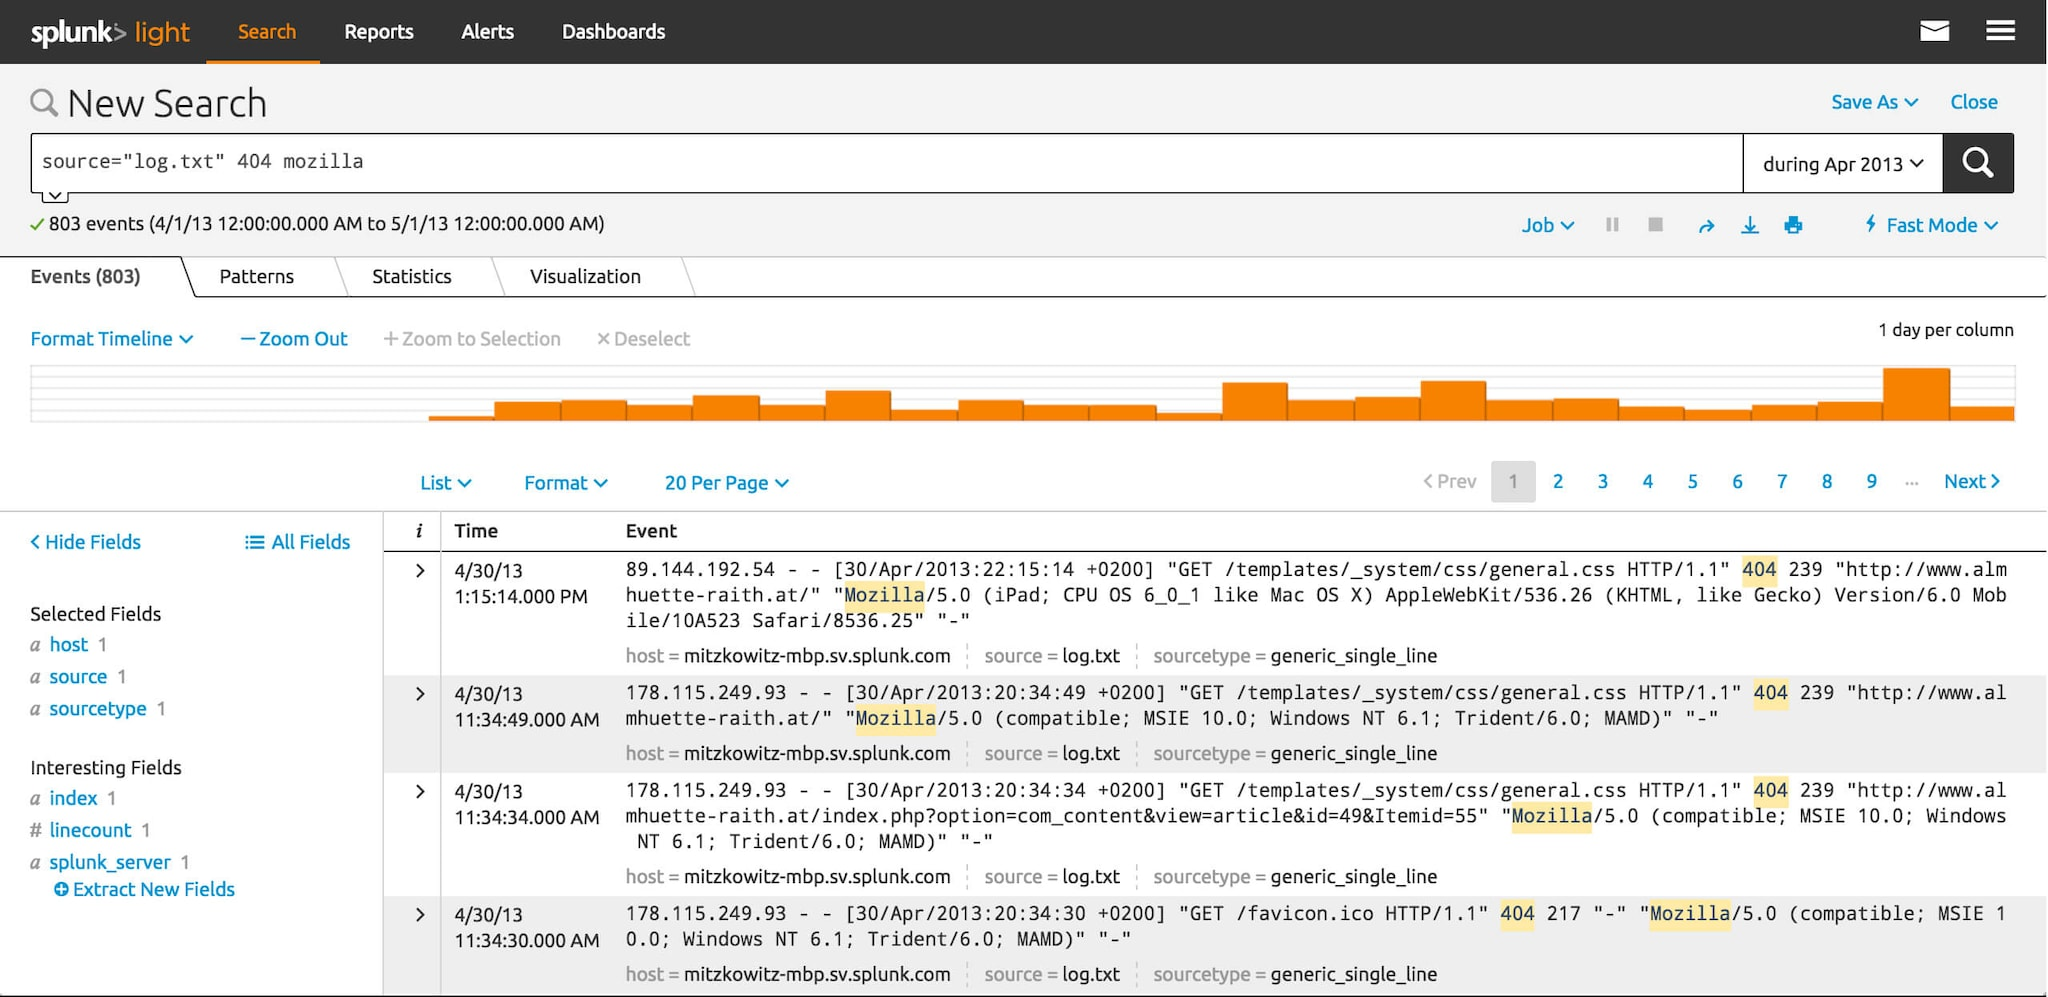 splunk light features